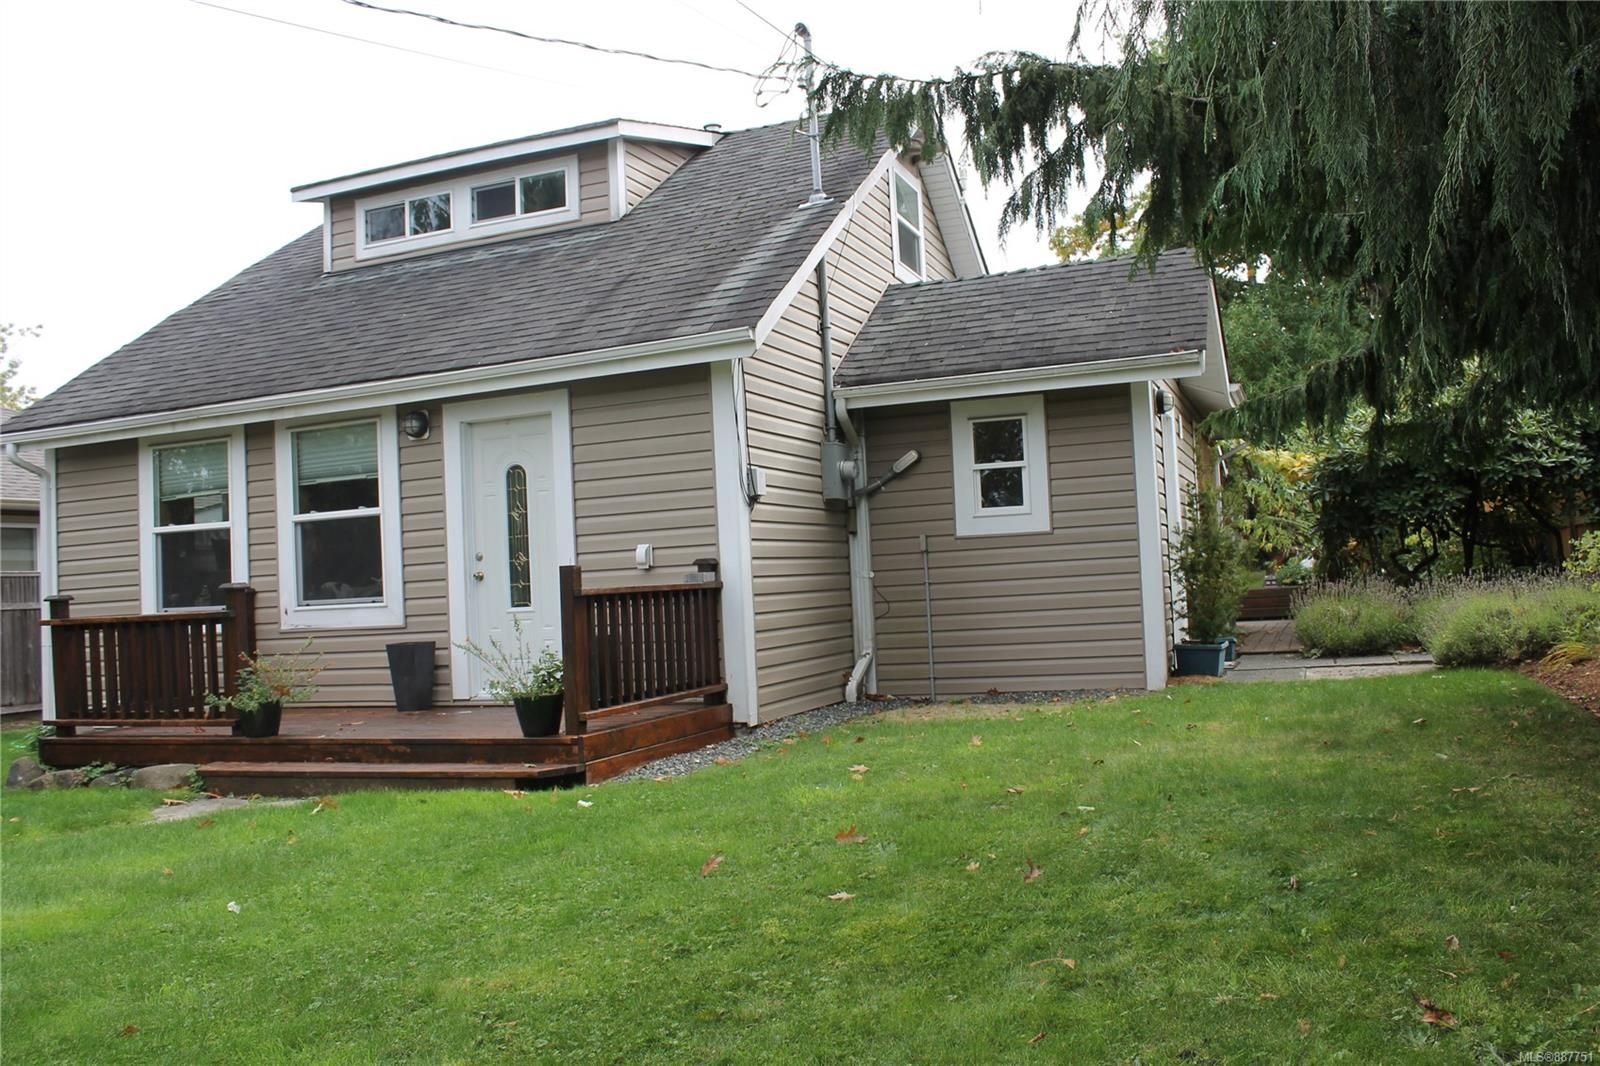 Main Photo: 1130 Fitzgerald Ave in Courtenay: CV Courtenay City House for sale (Comox Valley)  : MLS®# 887751